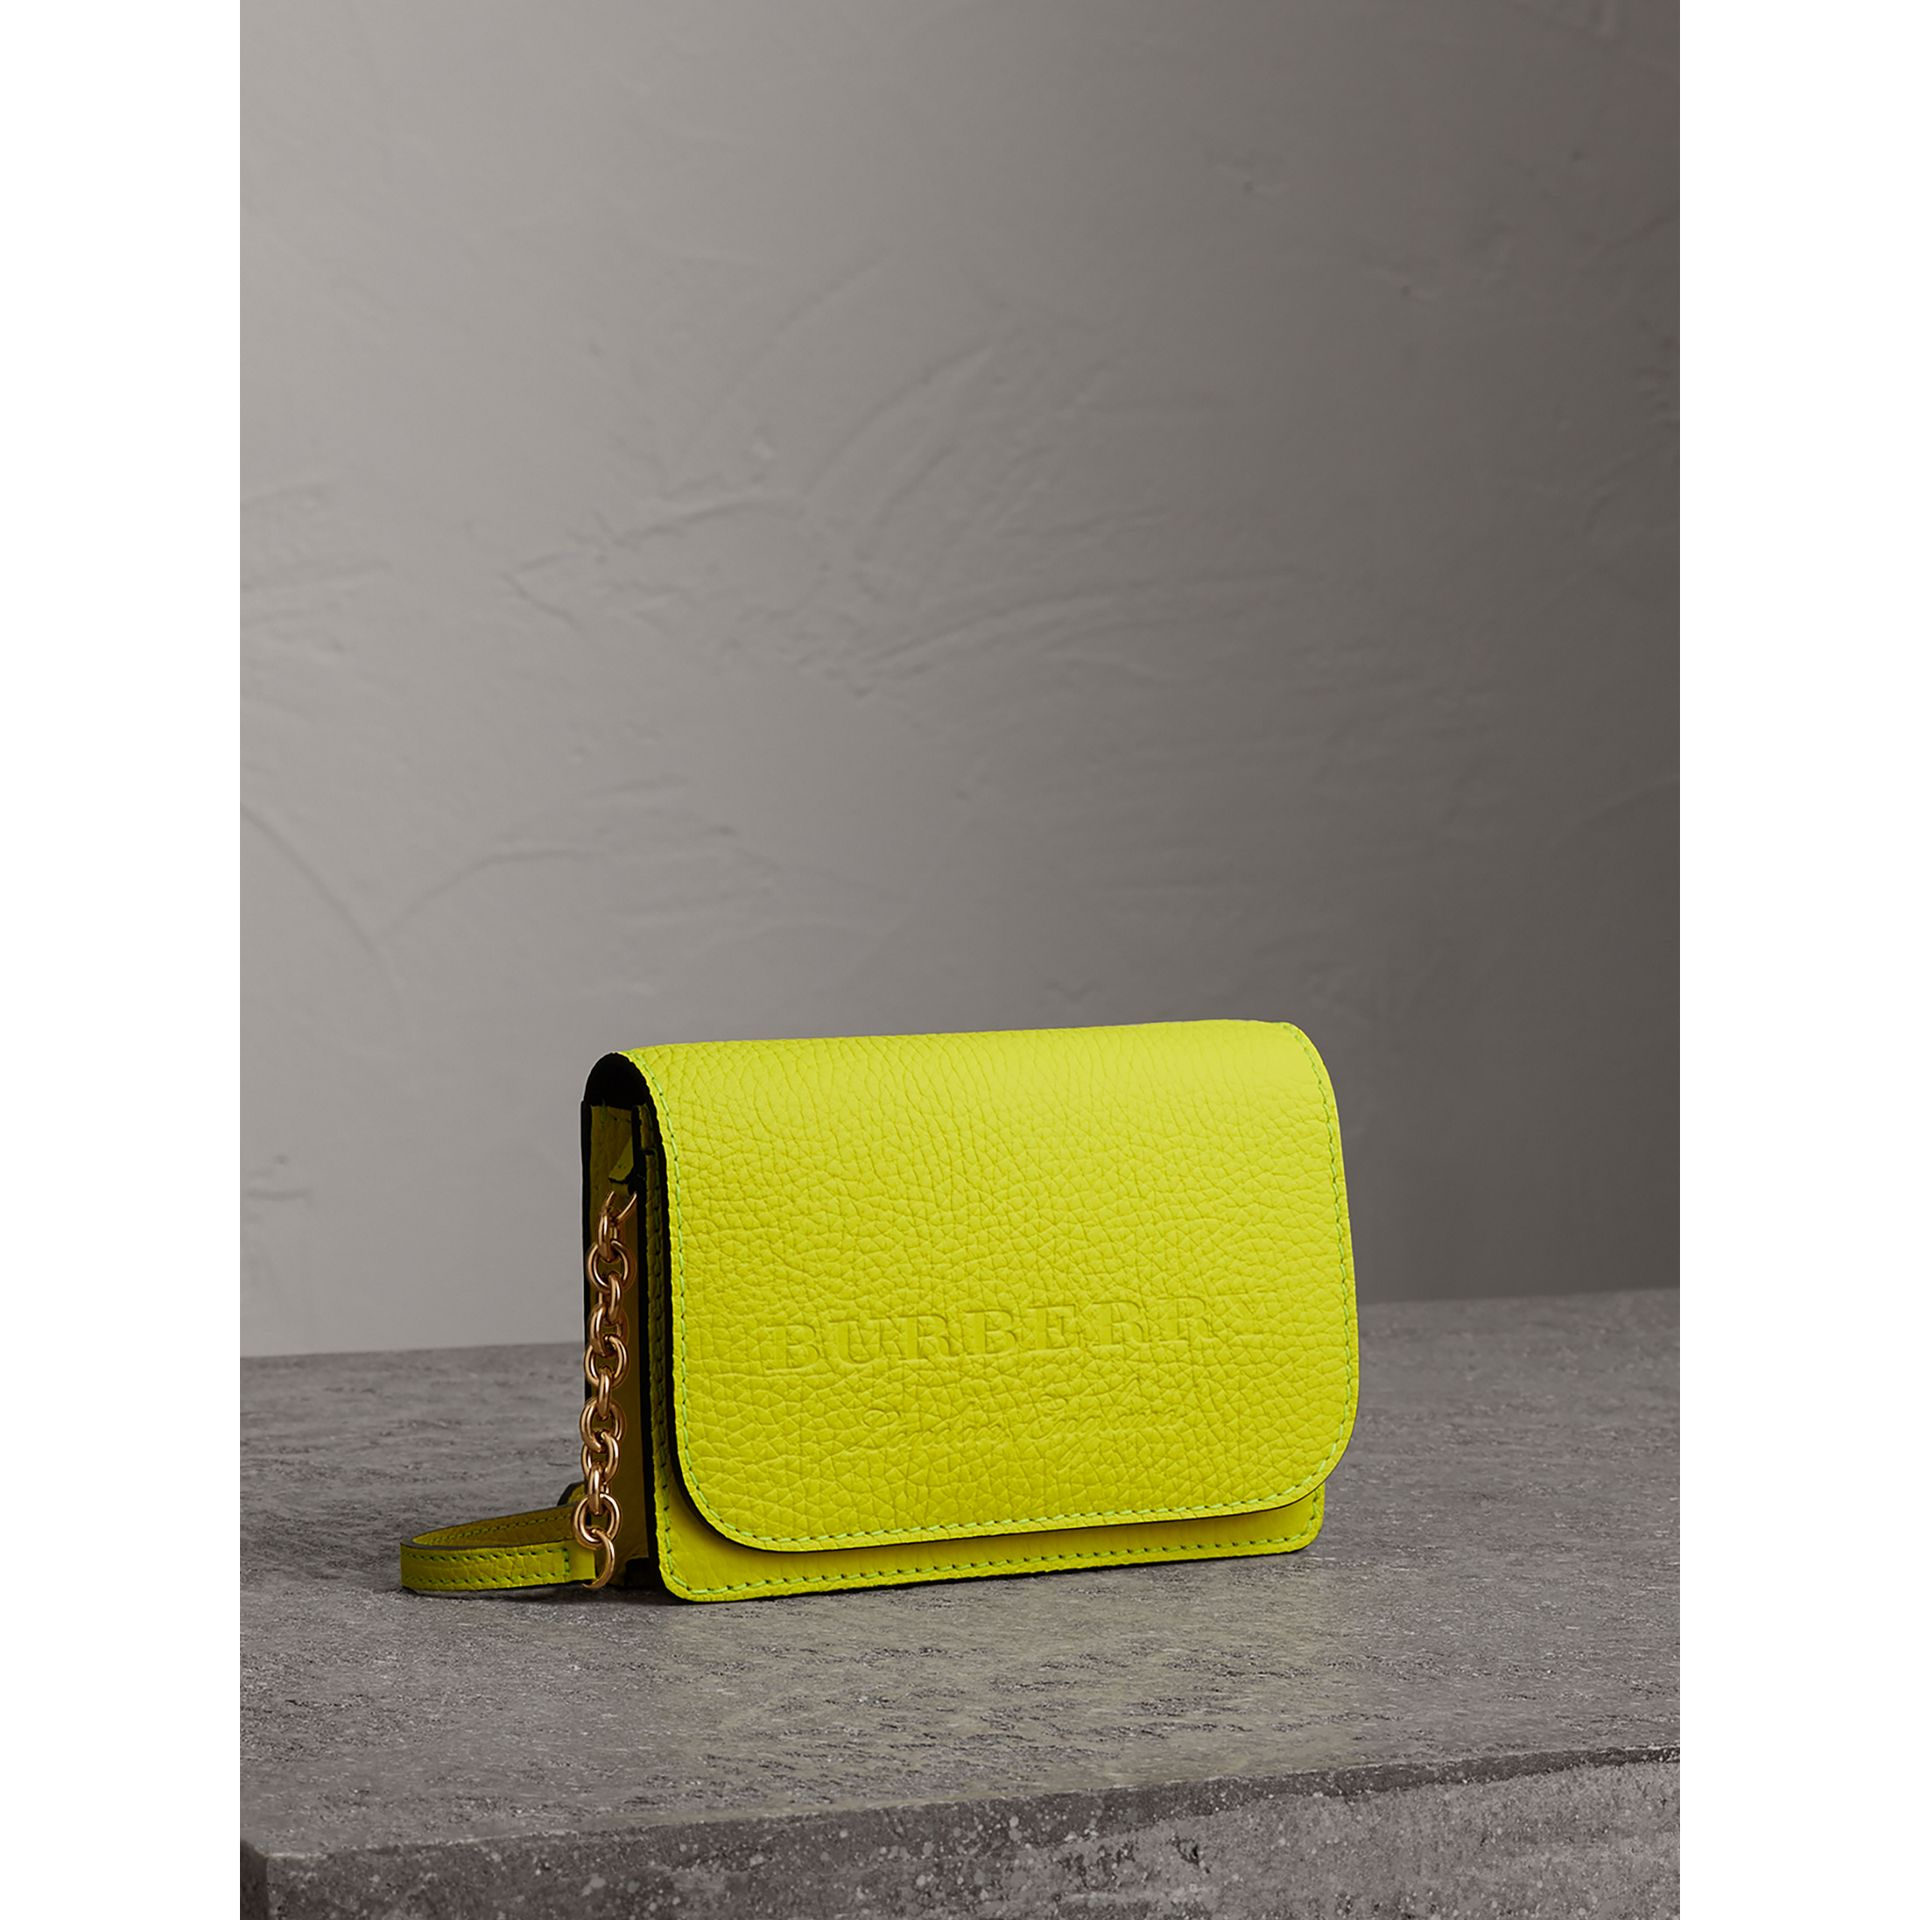 Embossed Leather Wallet with Detachable Strap in Bright Yellow - Women | Burberry Hong Kong - gallery image 7